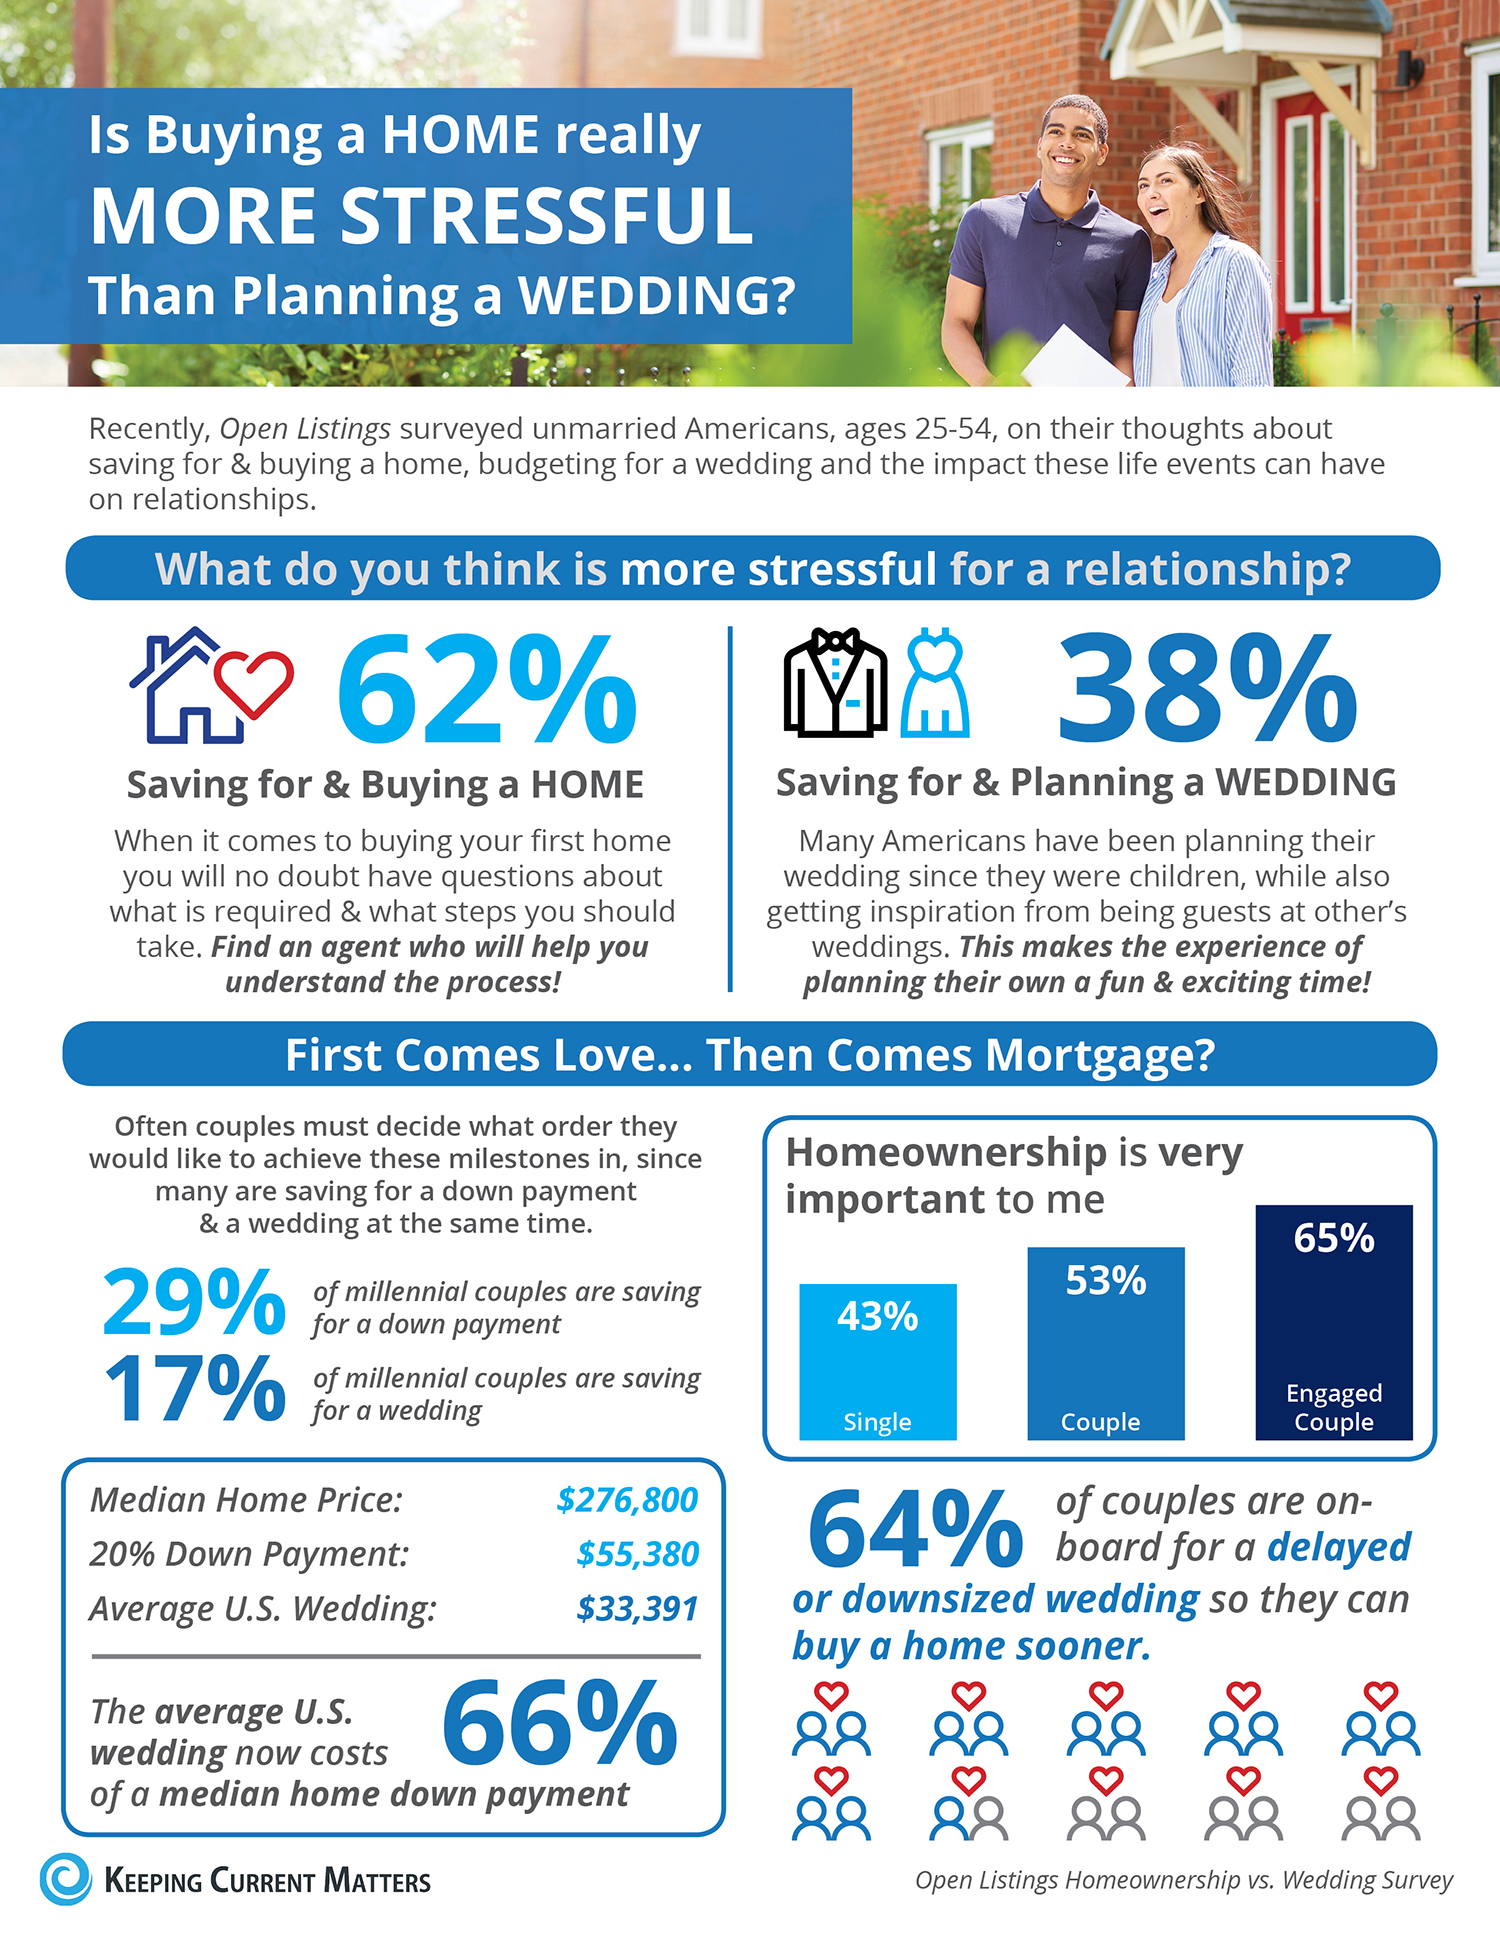 Is Buying a HOME really MORE STRESSFUL Than Planning a WEDDING? [INFOGRAPHIC] | Keeping Current Matters